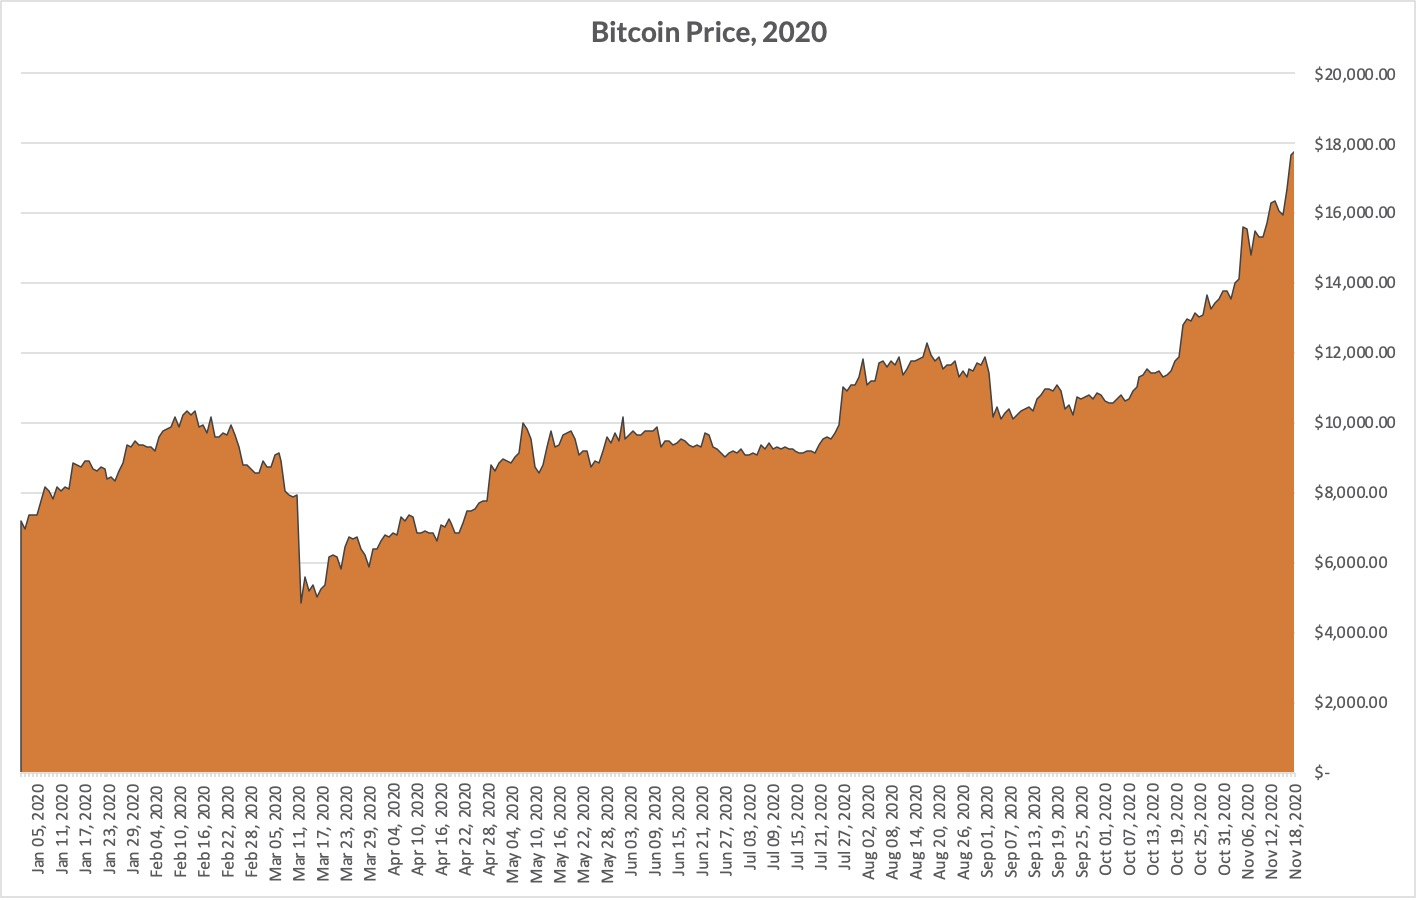 Bitcoin Price, January - November 2020